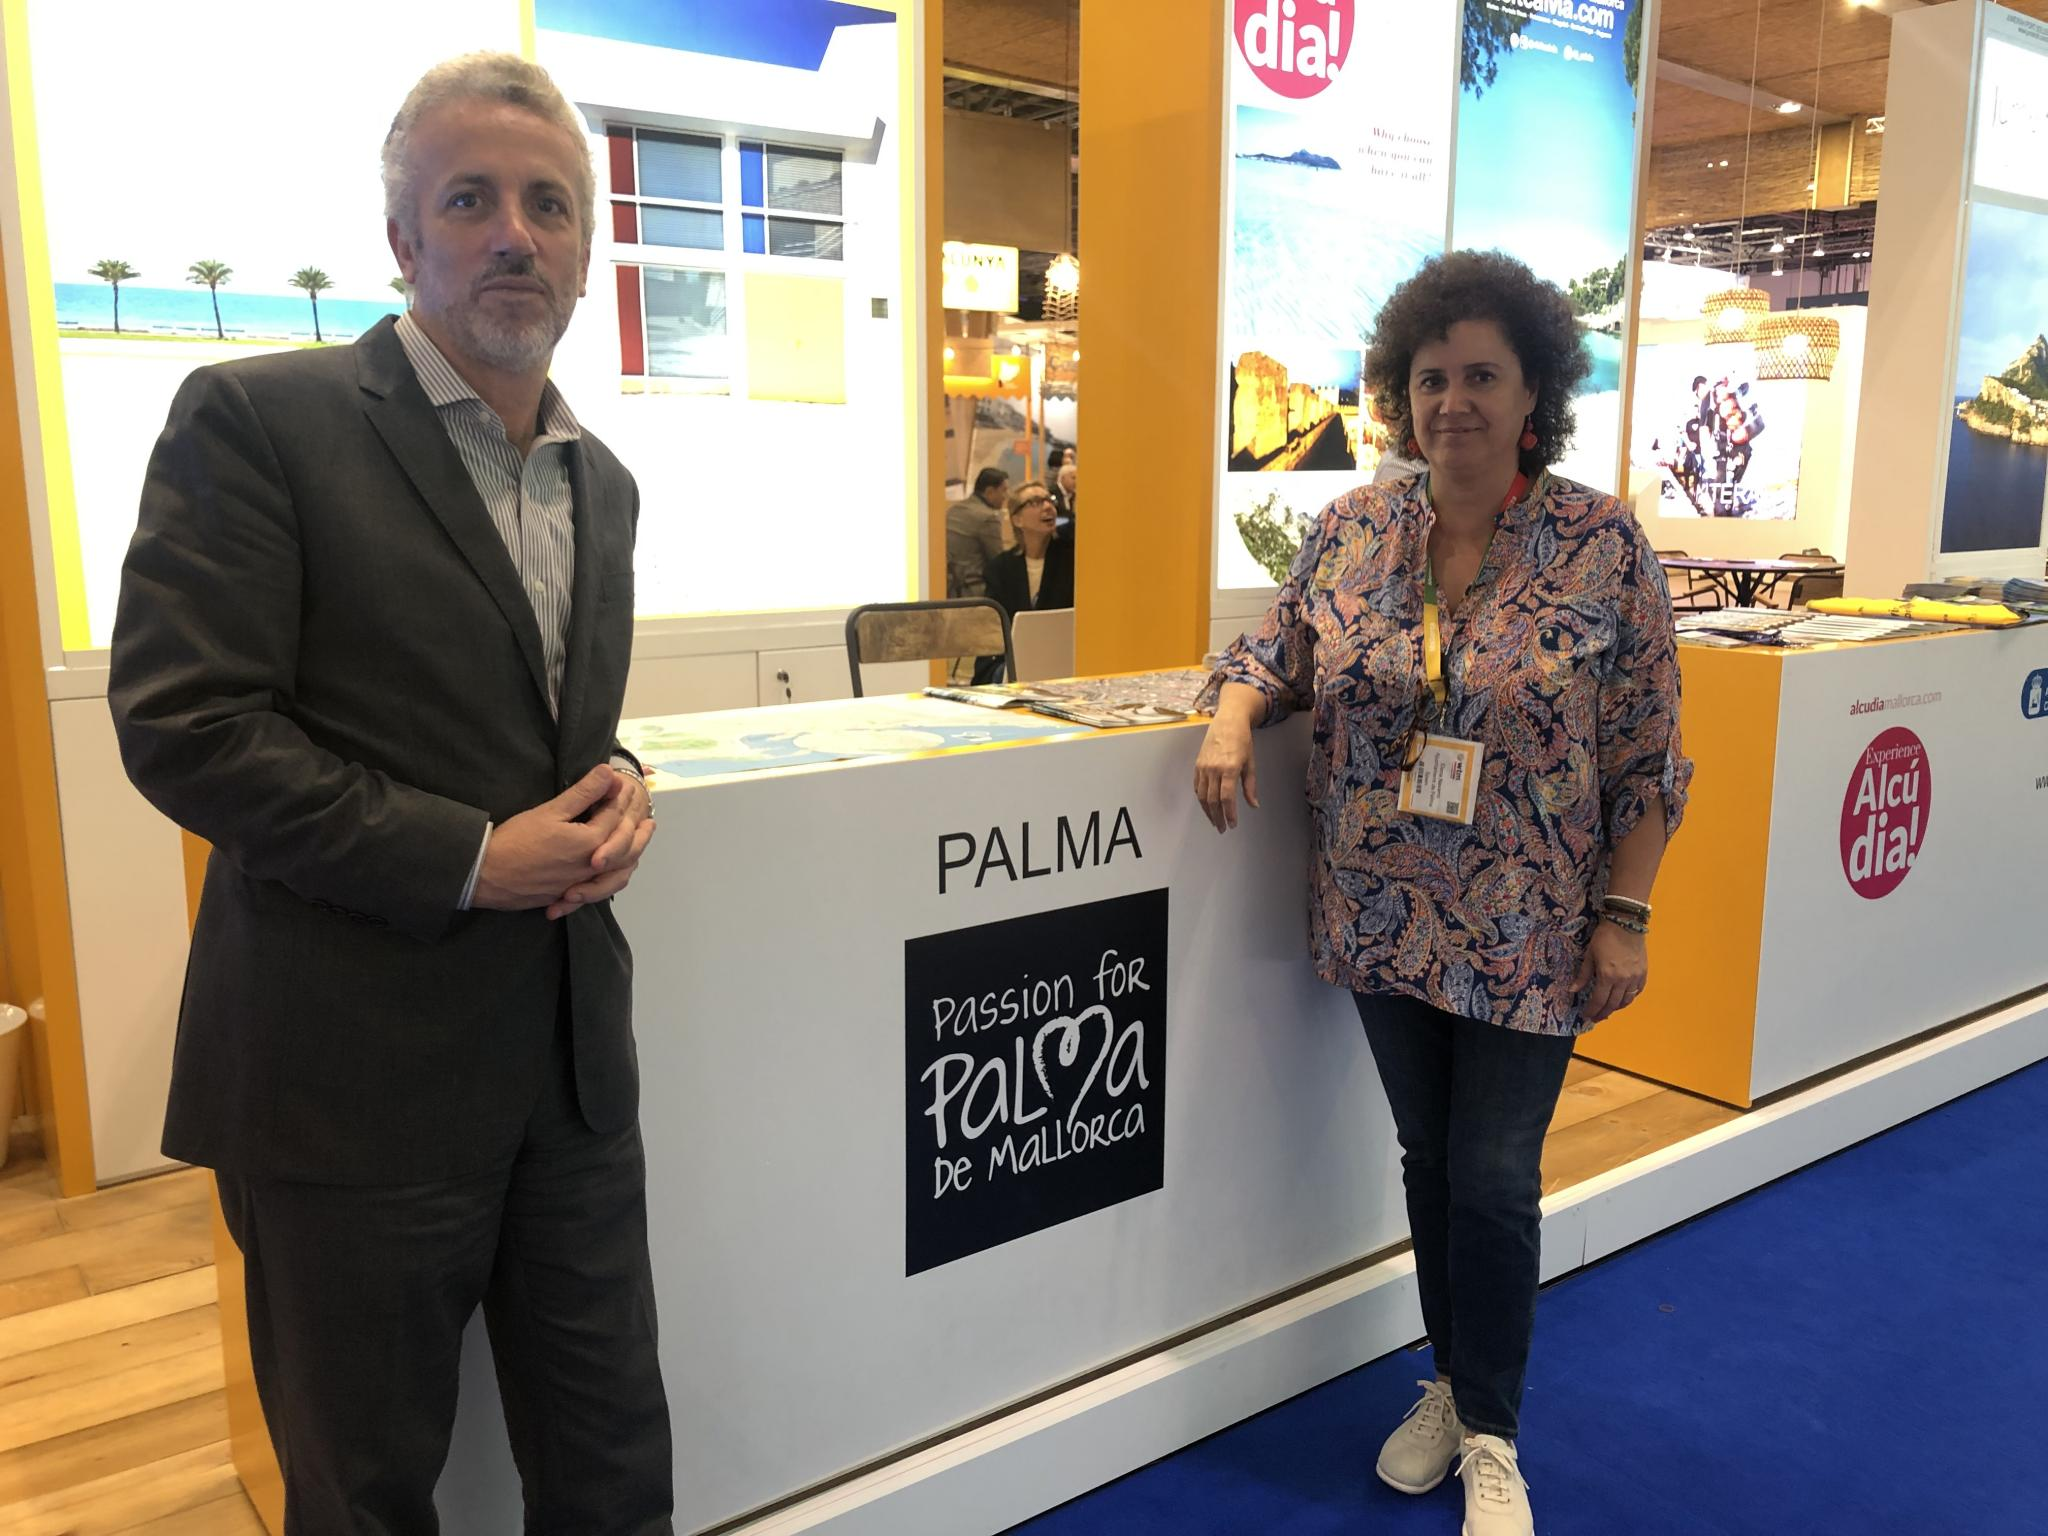 Pedro Homar together with Elena Navarro at the Balearic stand